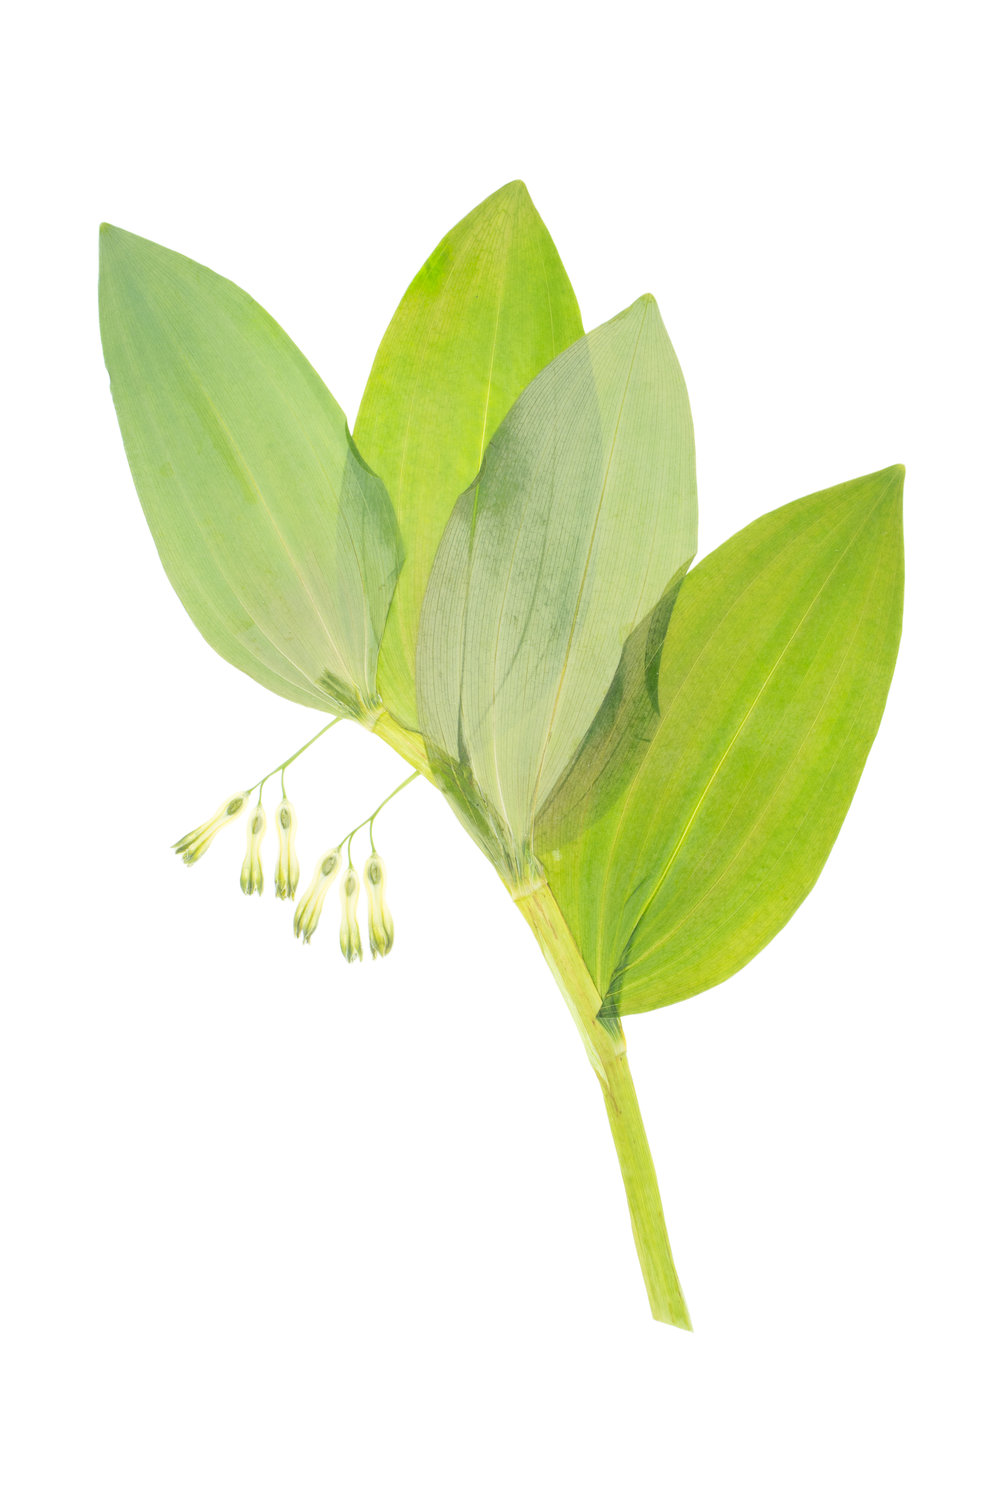 Polygonatum multiflorum / Solomon's Seal